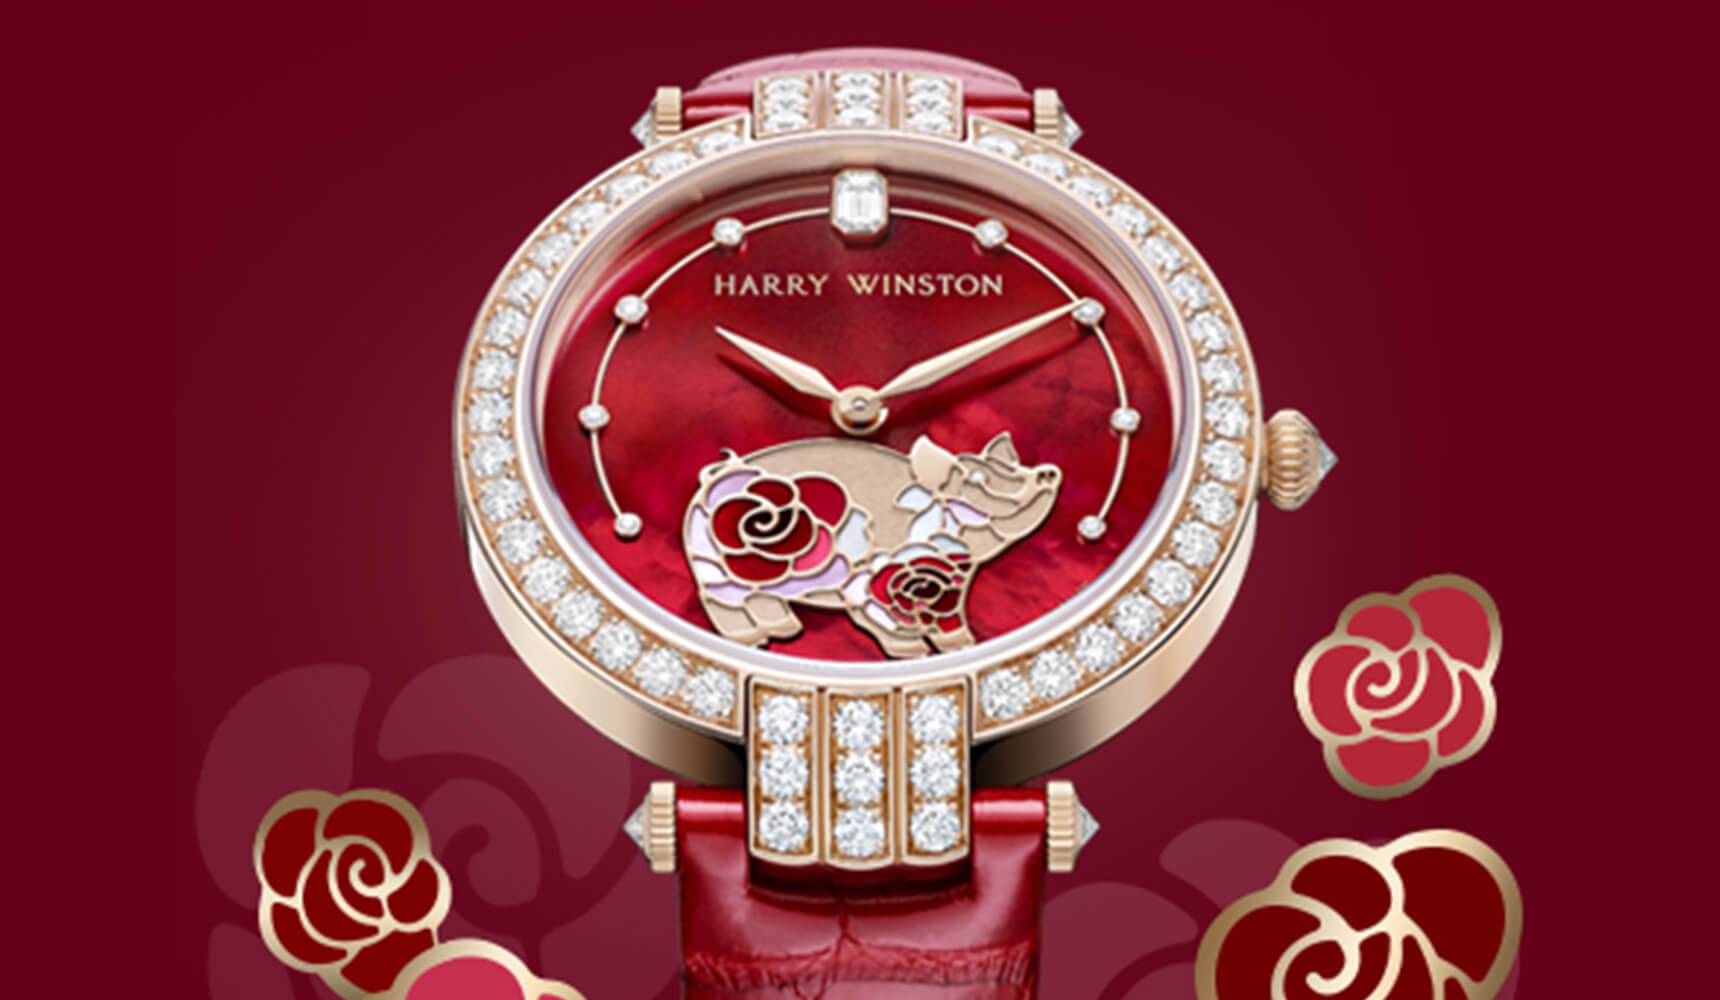 Harry Winston celebrates the Year of the Pig